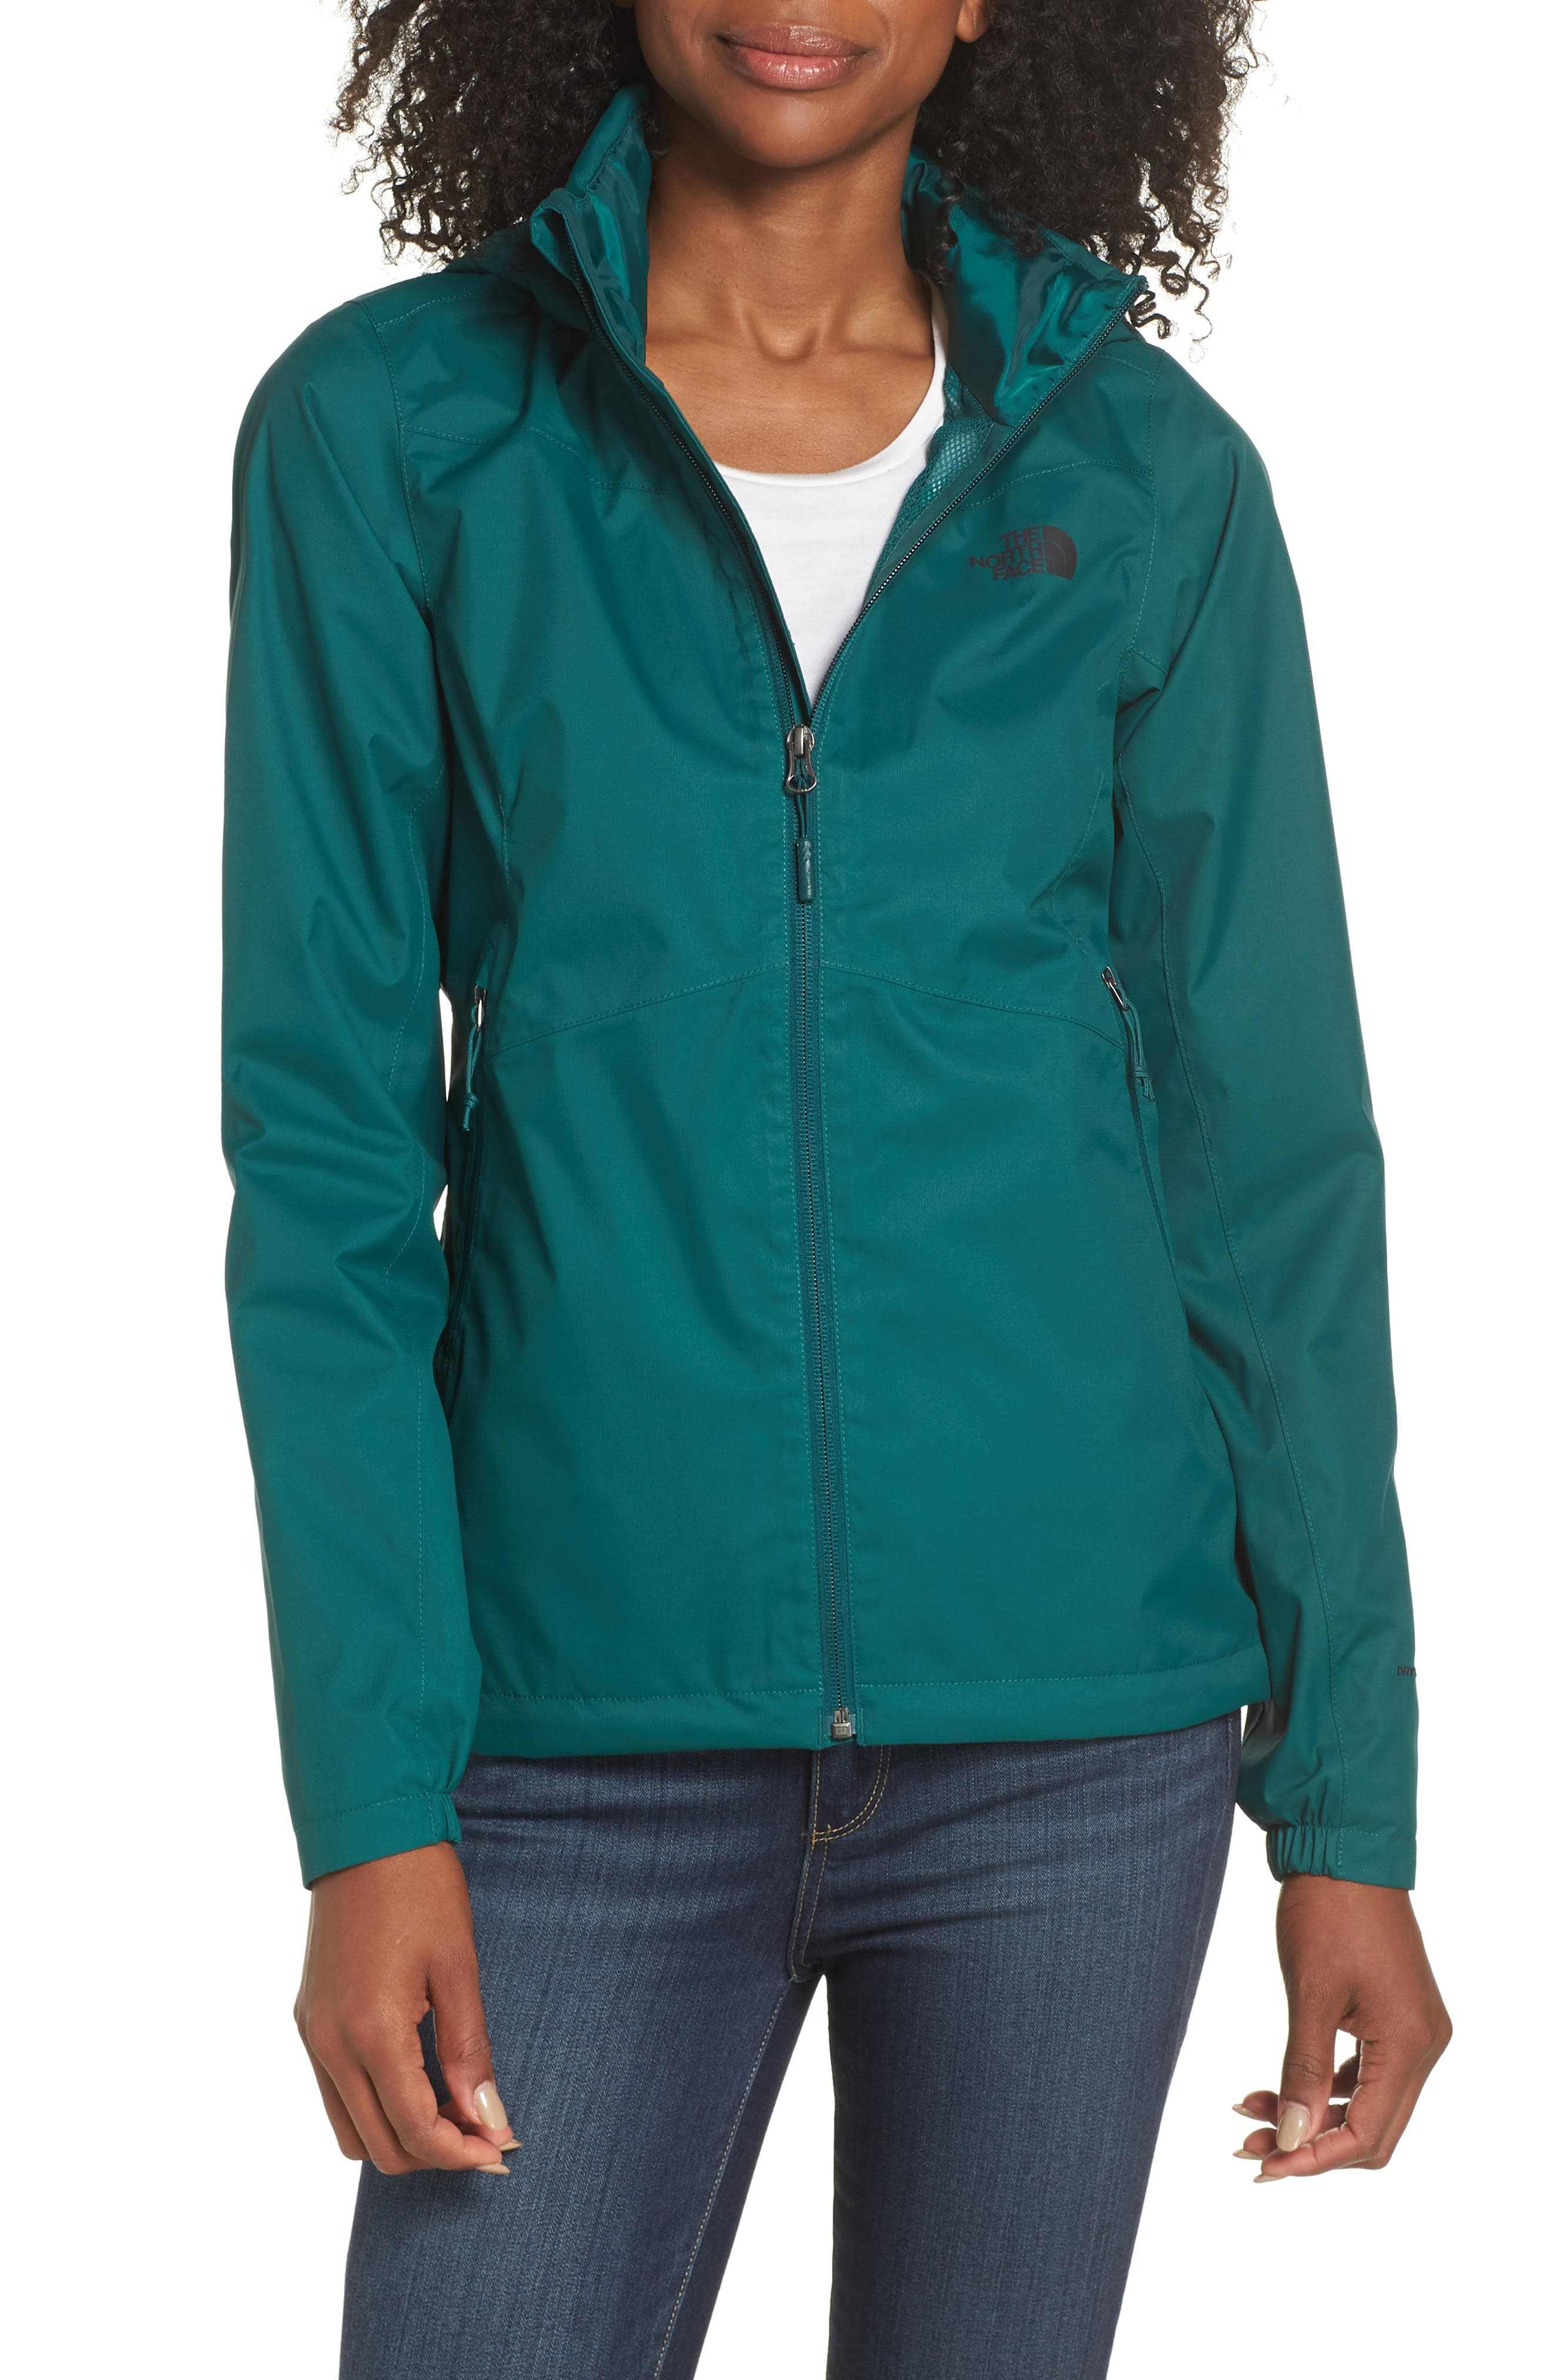 THE NORTH FACE, Resolve Plus Waterproof Jacket, Main thumbnail 1, color, 301